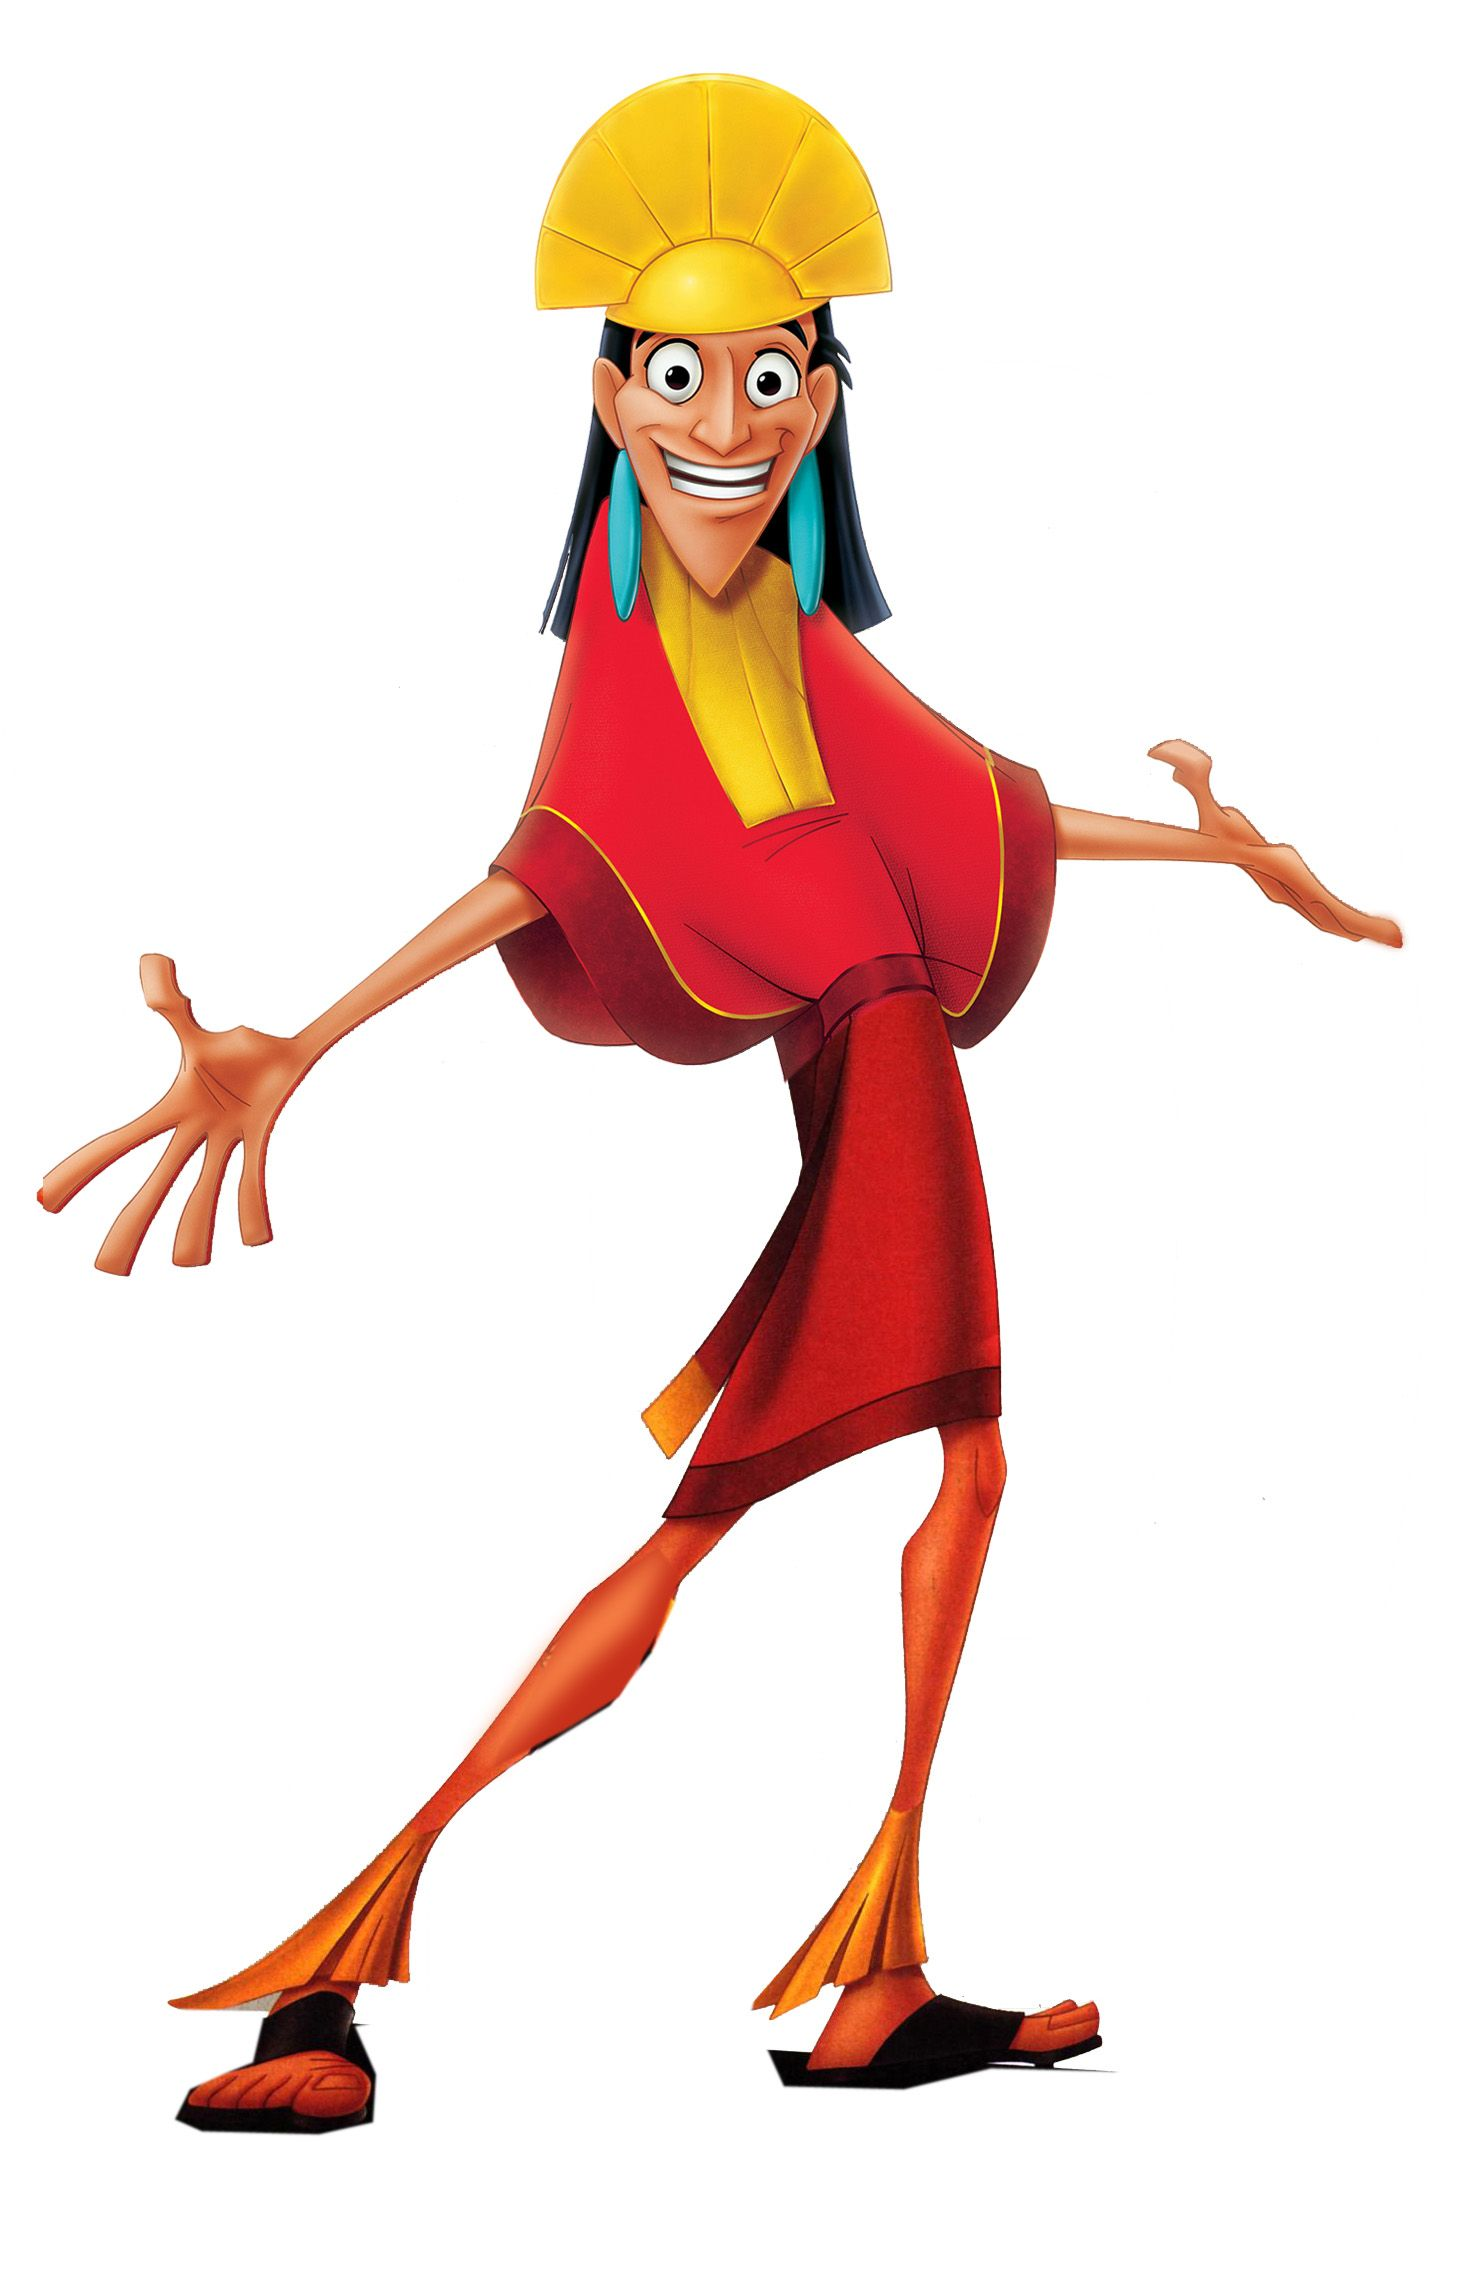 the emperor's new groove kuzco | kuzco background information feature films the emperor s new groove ...